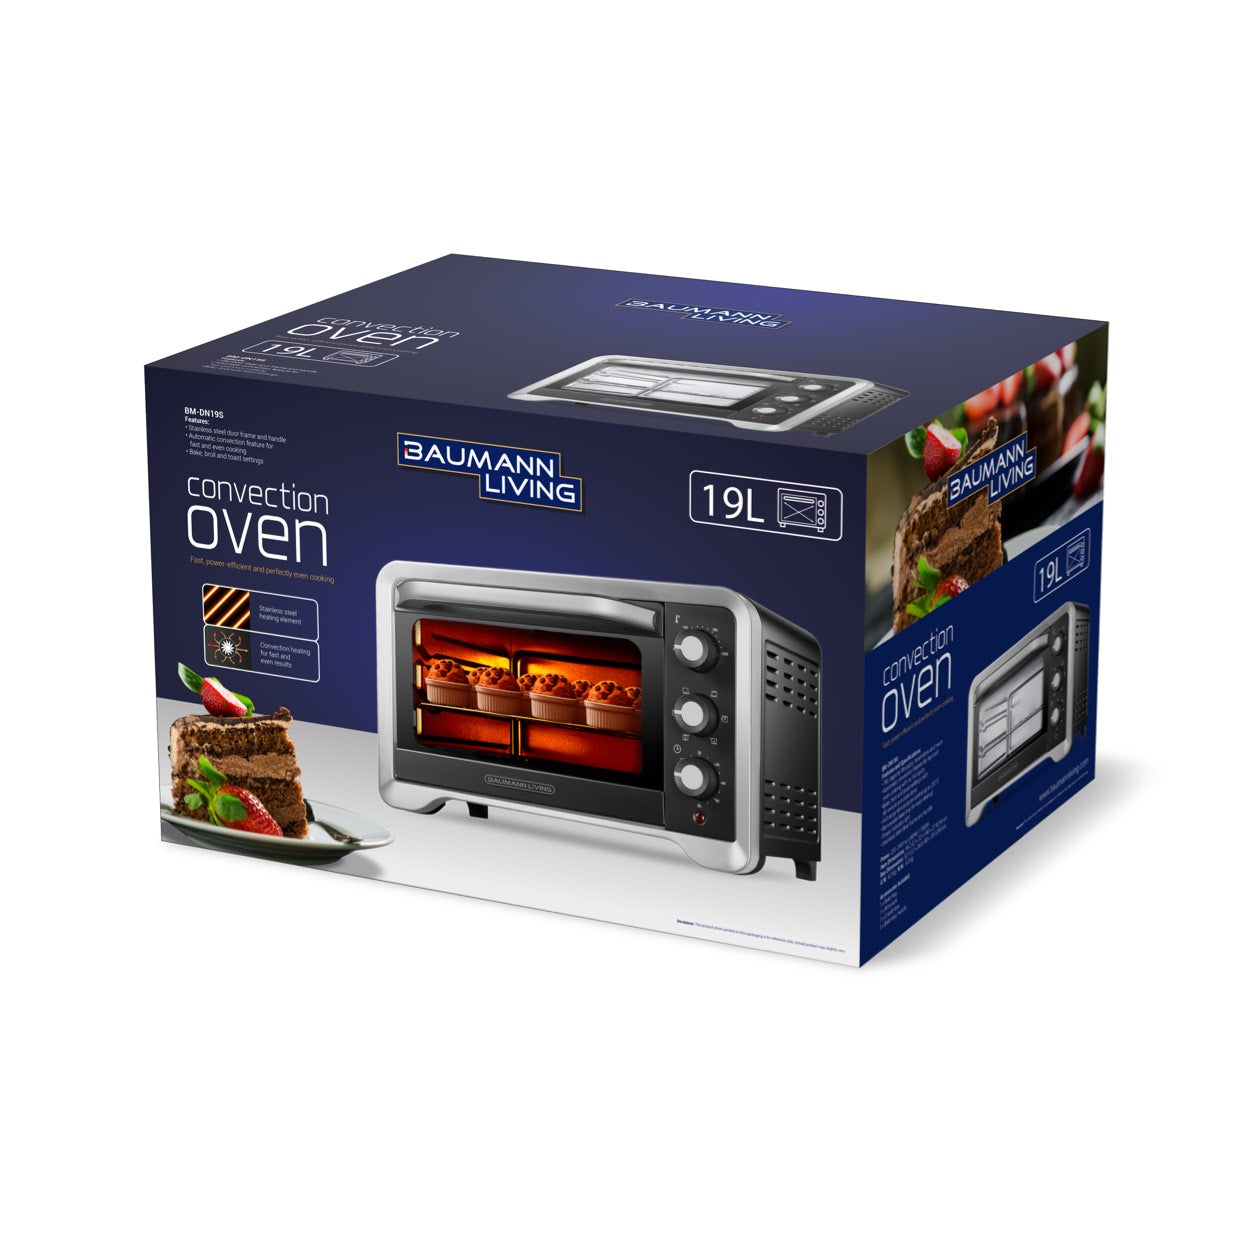 19L Convection Oven (2021 model)